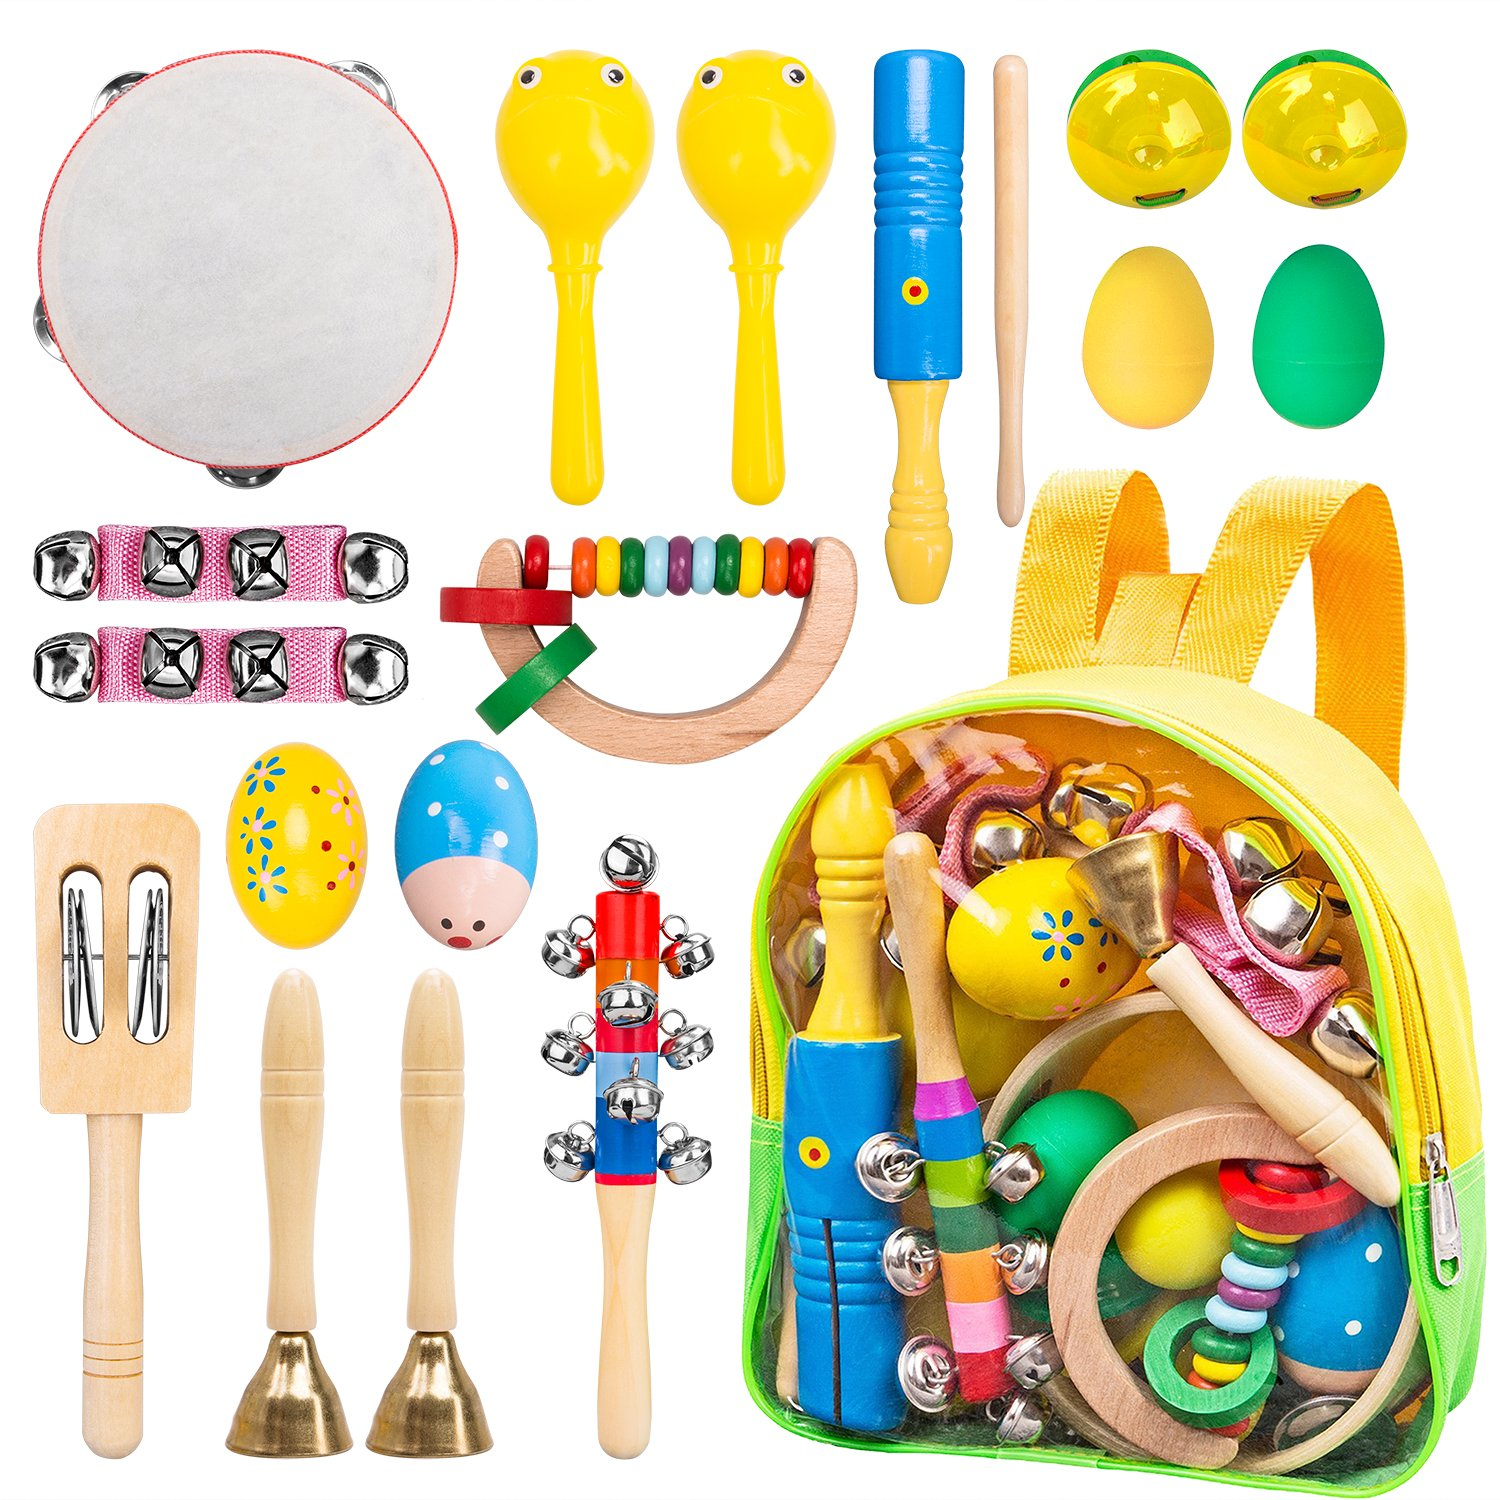 INNOCHEER Kids Musical Instruments, ASTM Certified, FDA Approved, Toddler Wooden Musical Toys with Backpack, 17 Pieces